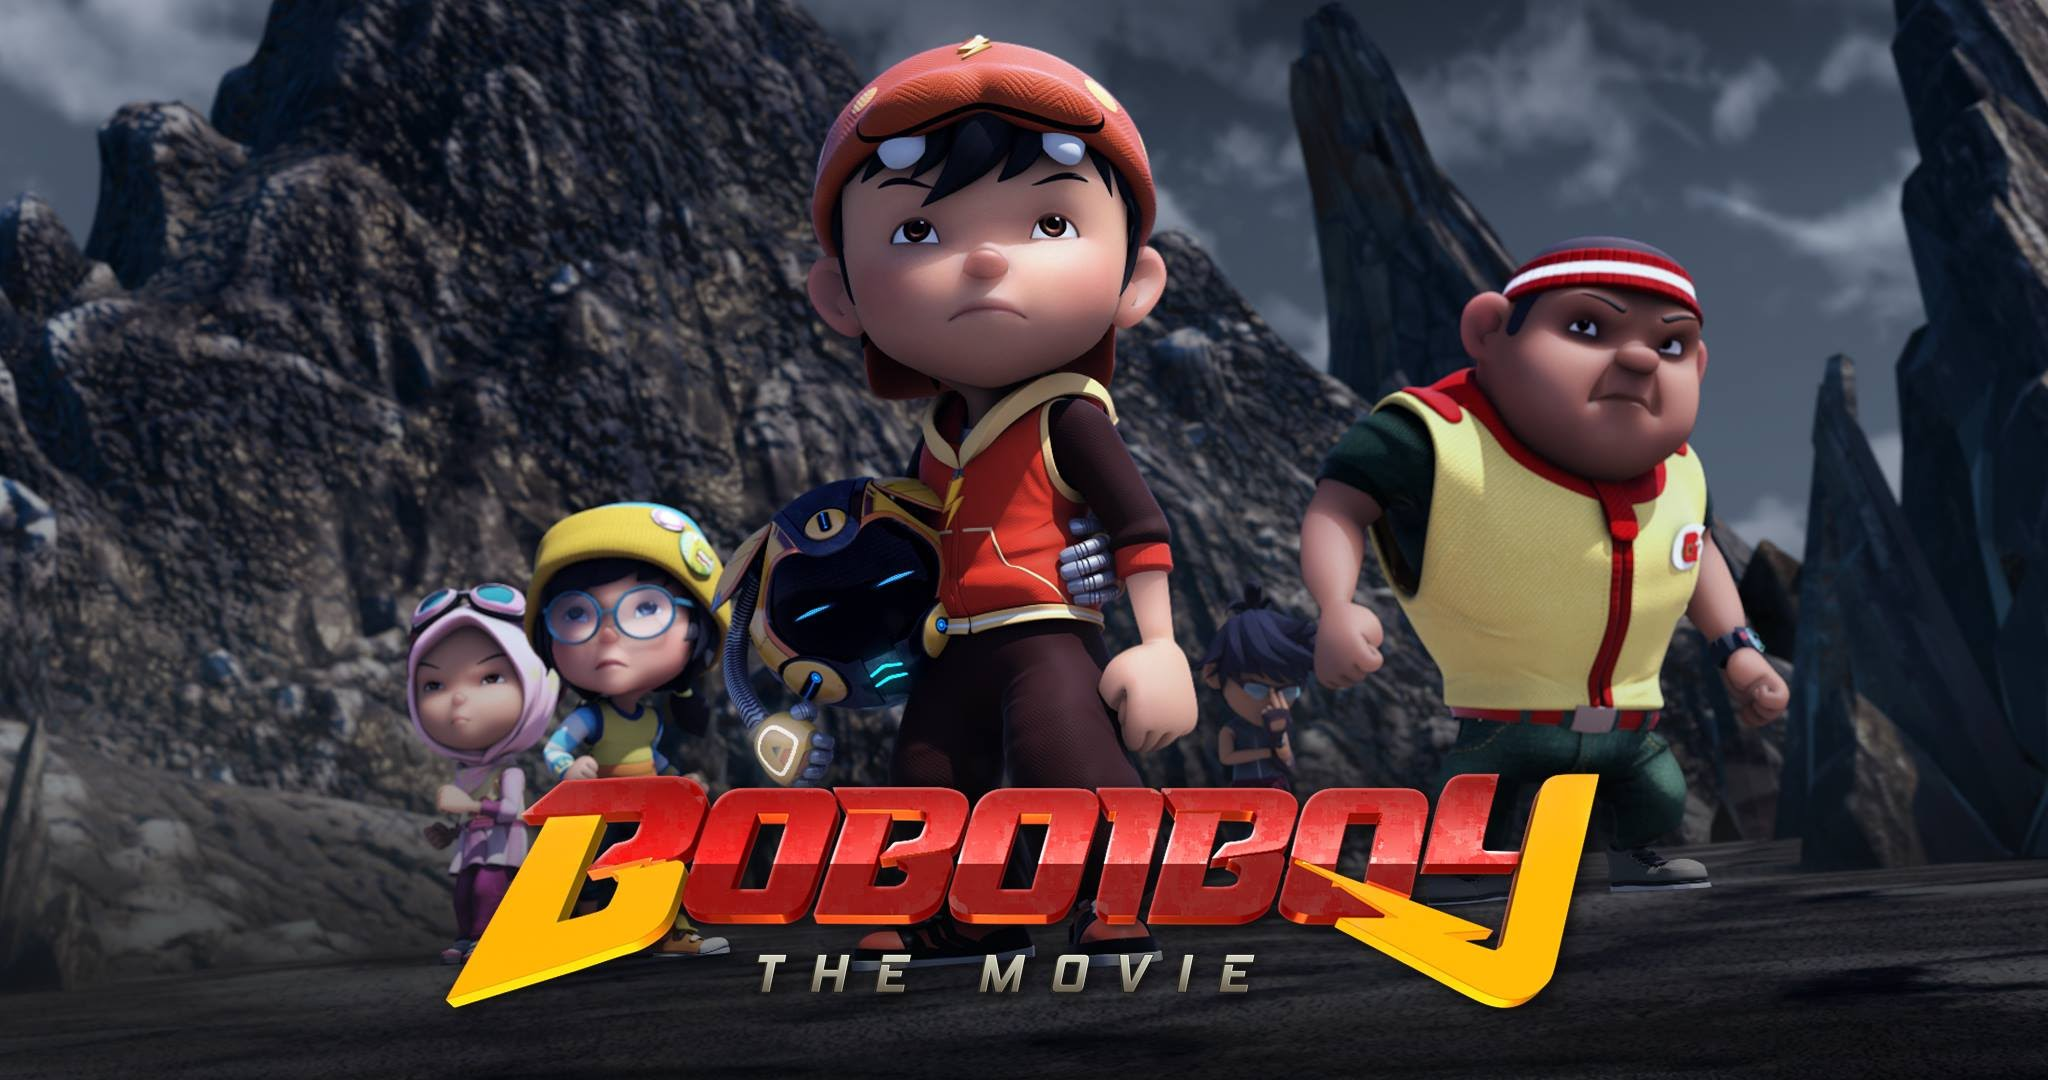 5 Things That Should Have Been In Boboiboy The Movie